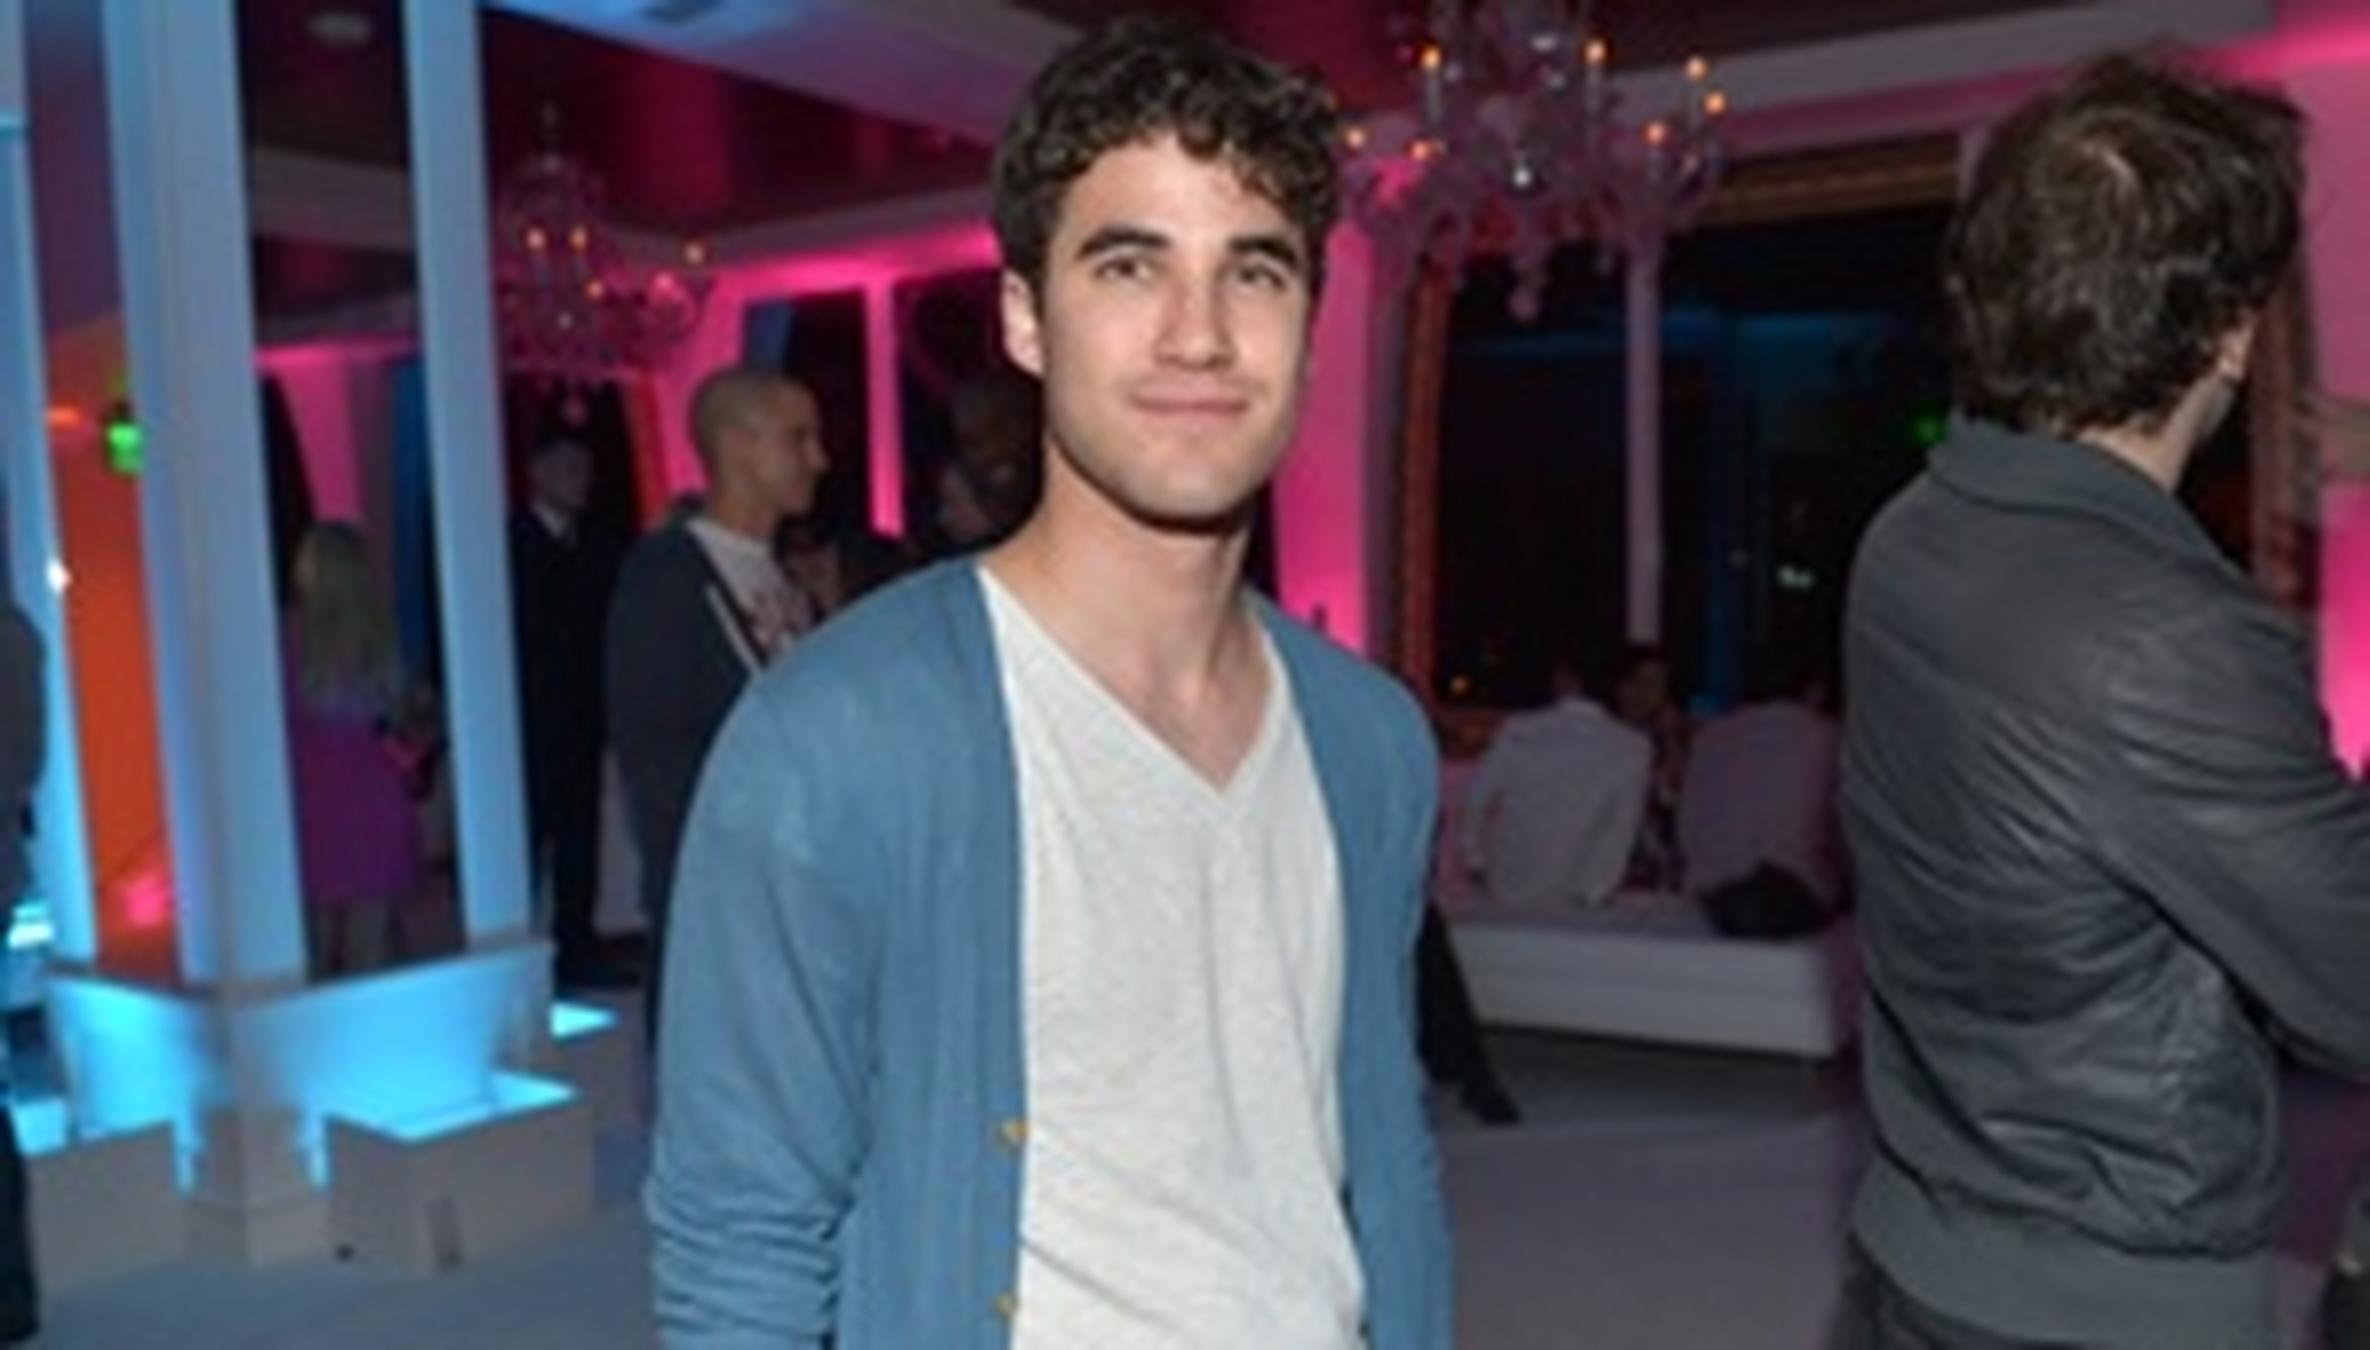 Glee star Darren Criss to replace Daniel Radcliffe on Broadway pictures